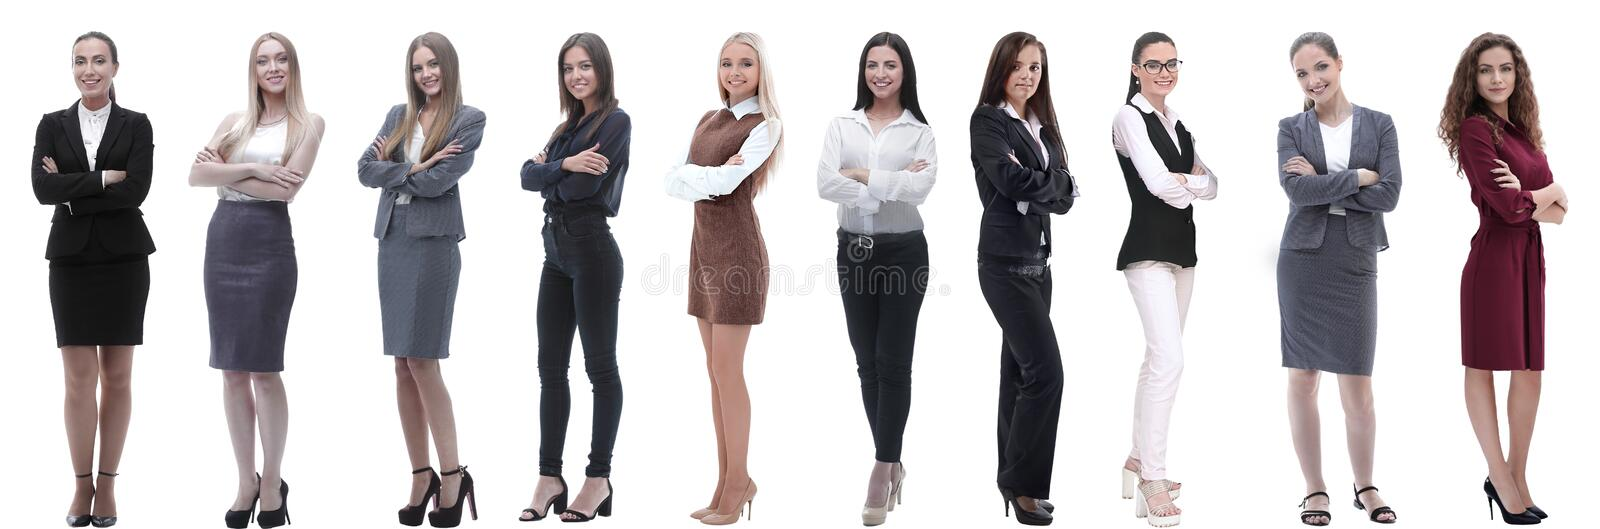 Panoramic collage of a group of successful young business women. Isolated on white background stock photos